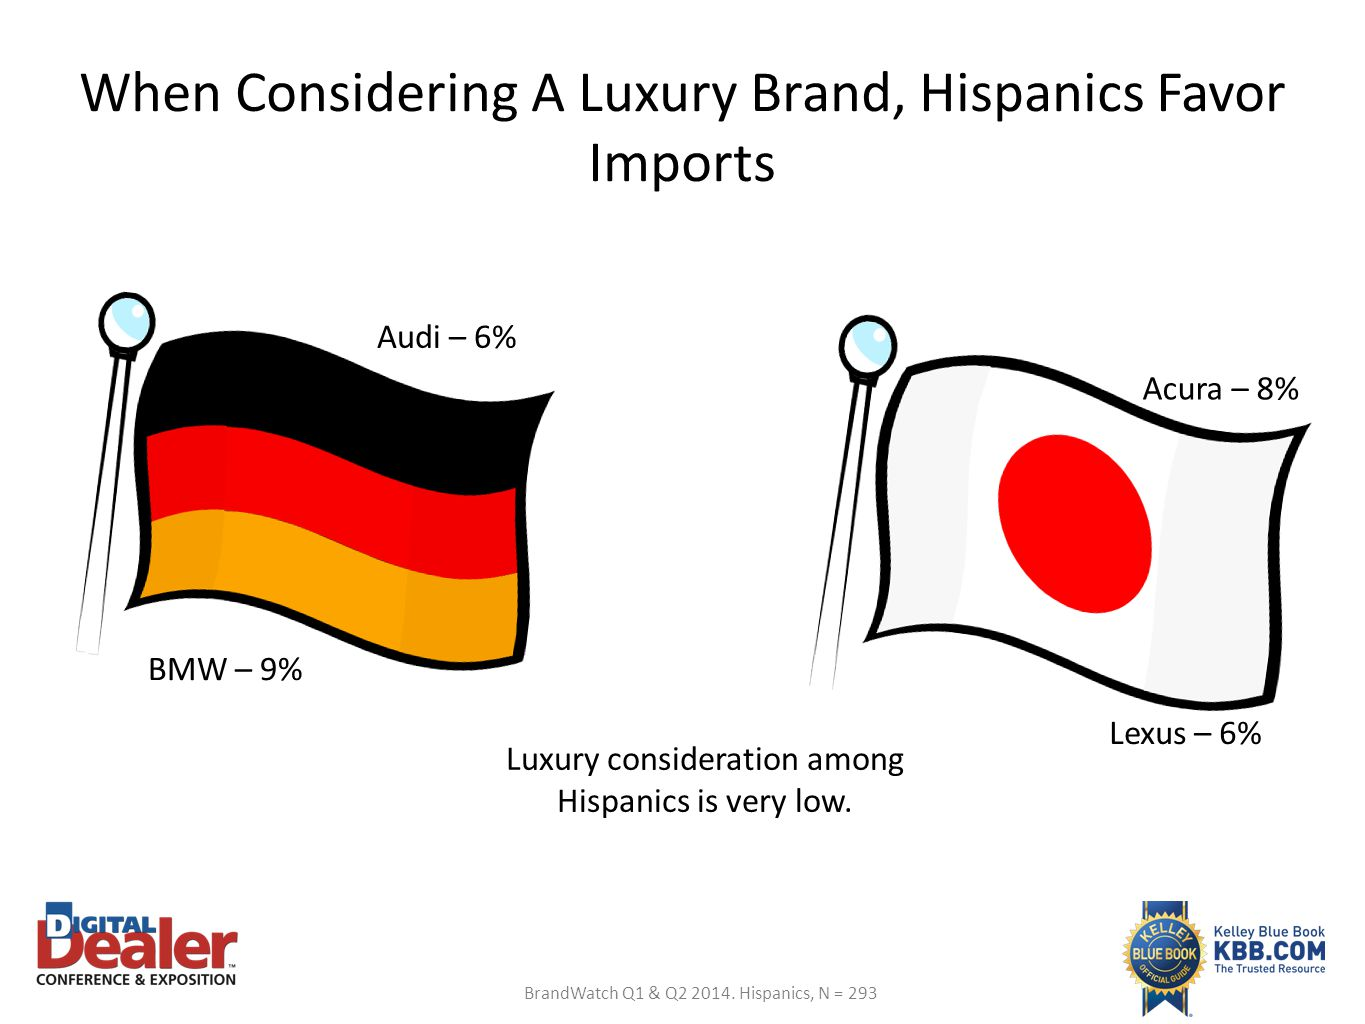 When Considering A Luxury Brand, Hispanics Favor Imports